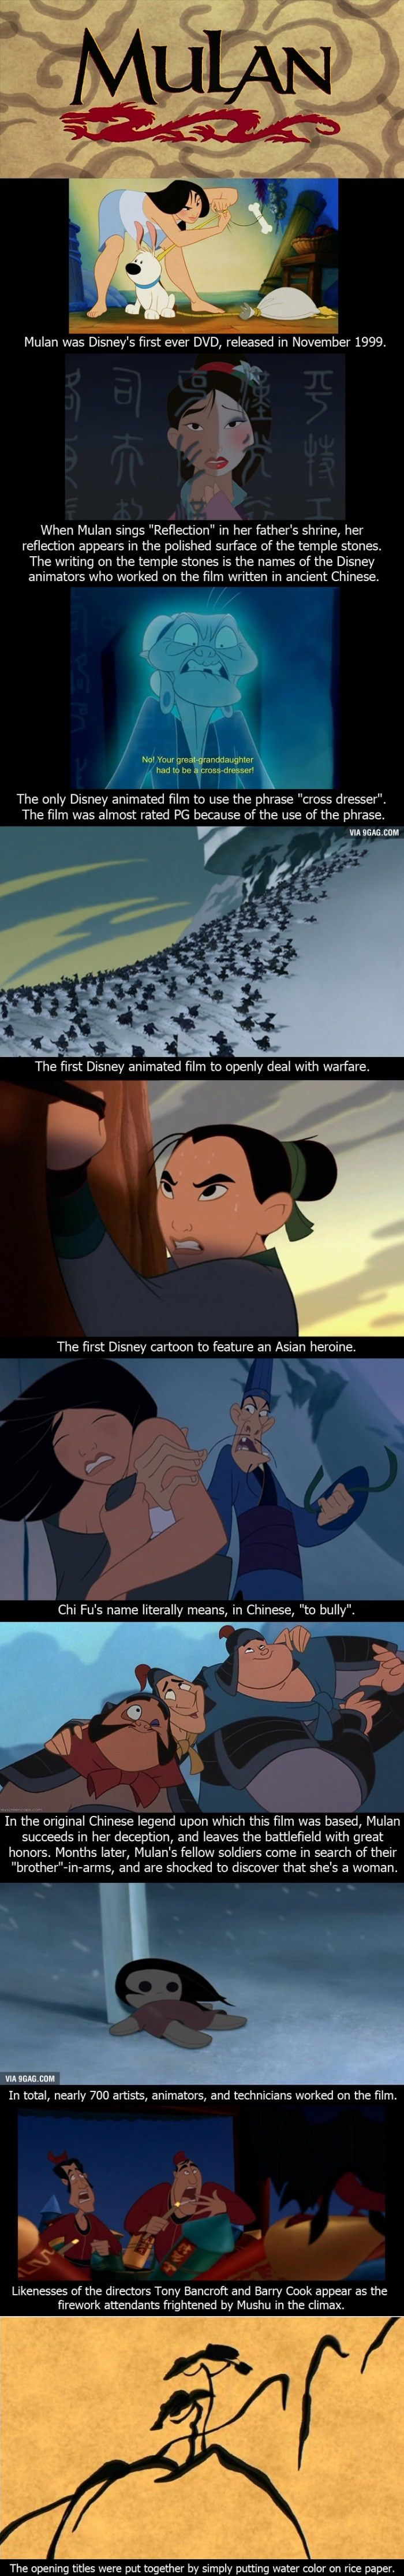 one of these is wrong!! it is not the only disney movie to openly deal with warfare, what about pocahontas???